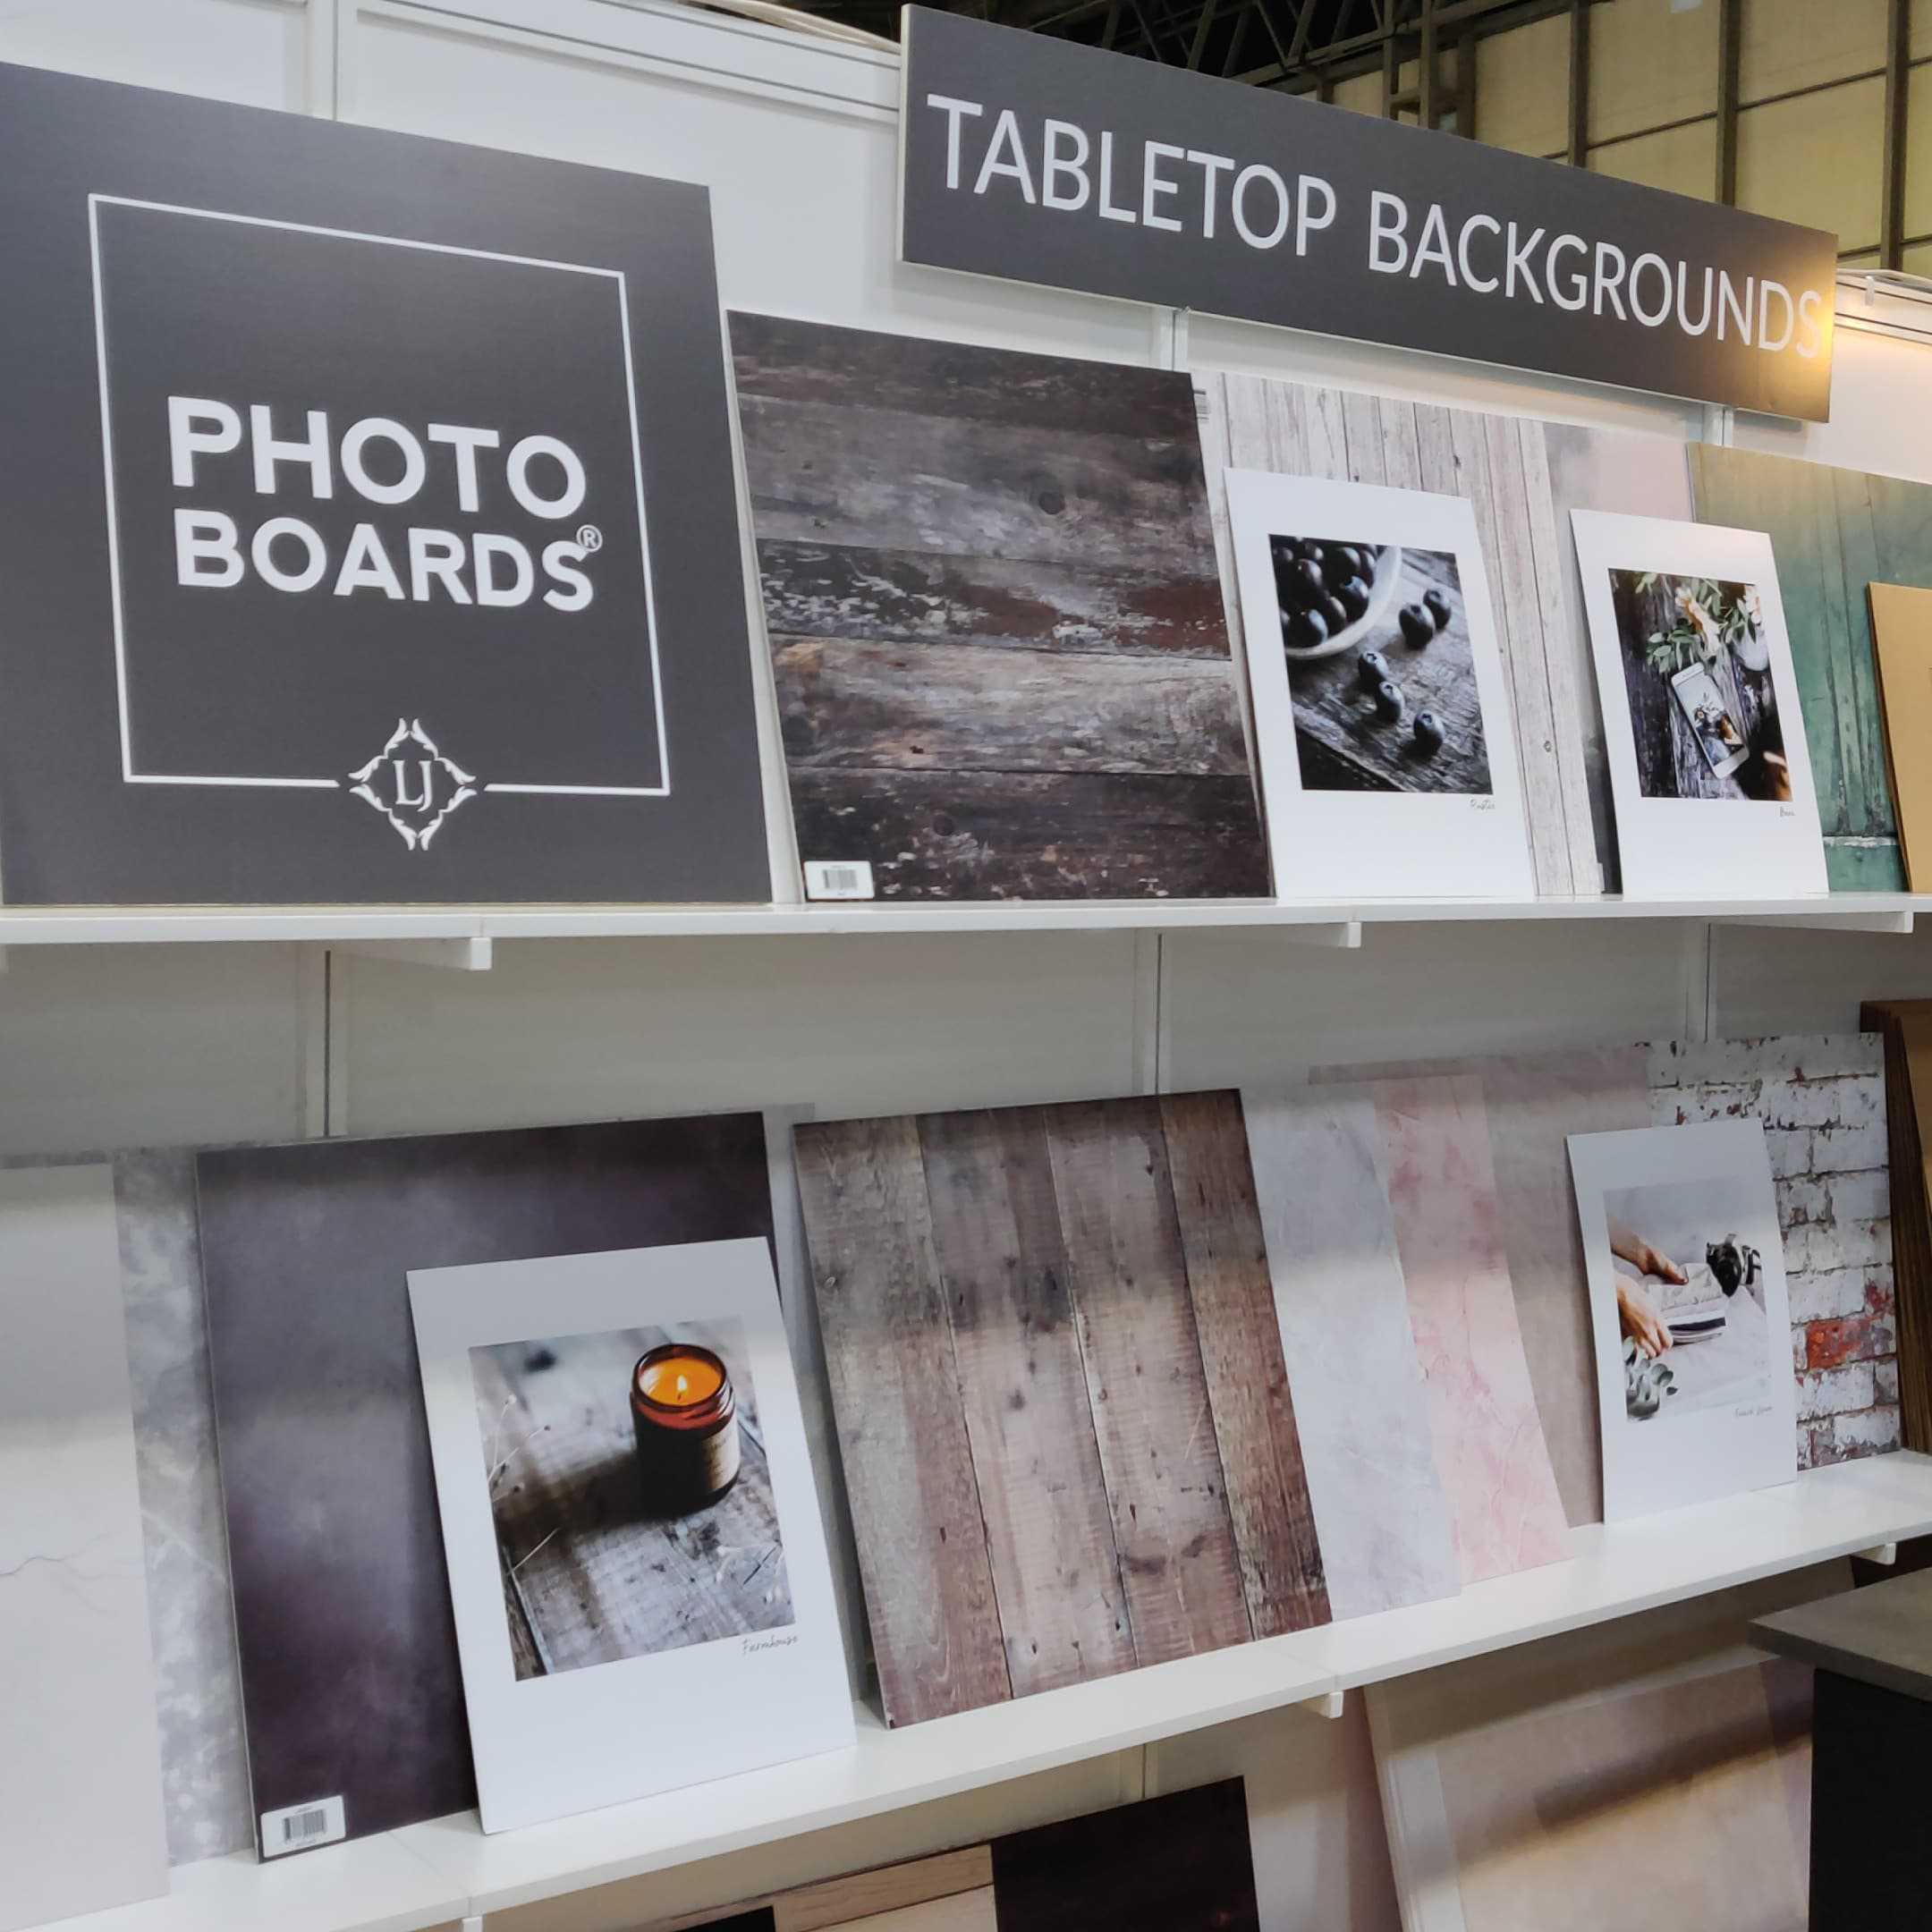 Photoboards.org display stand